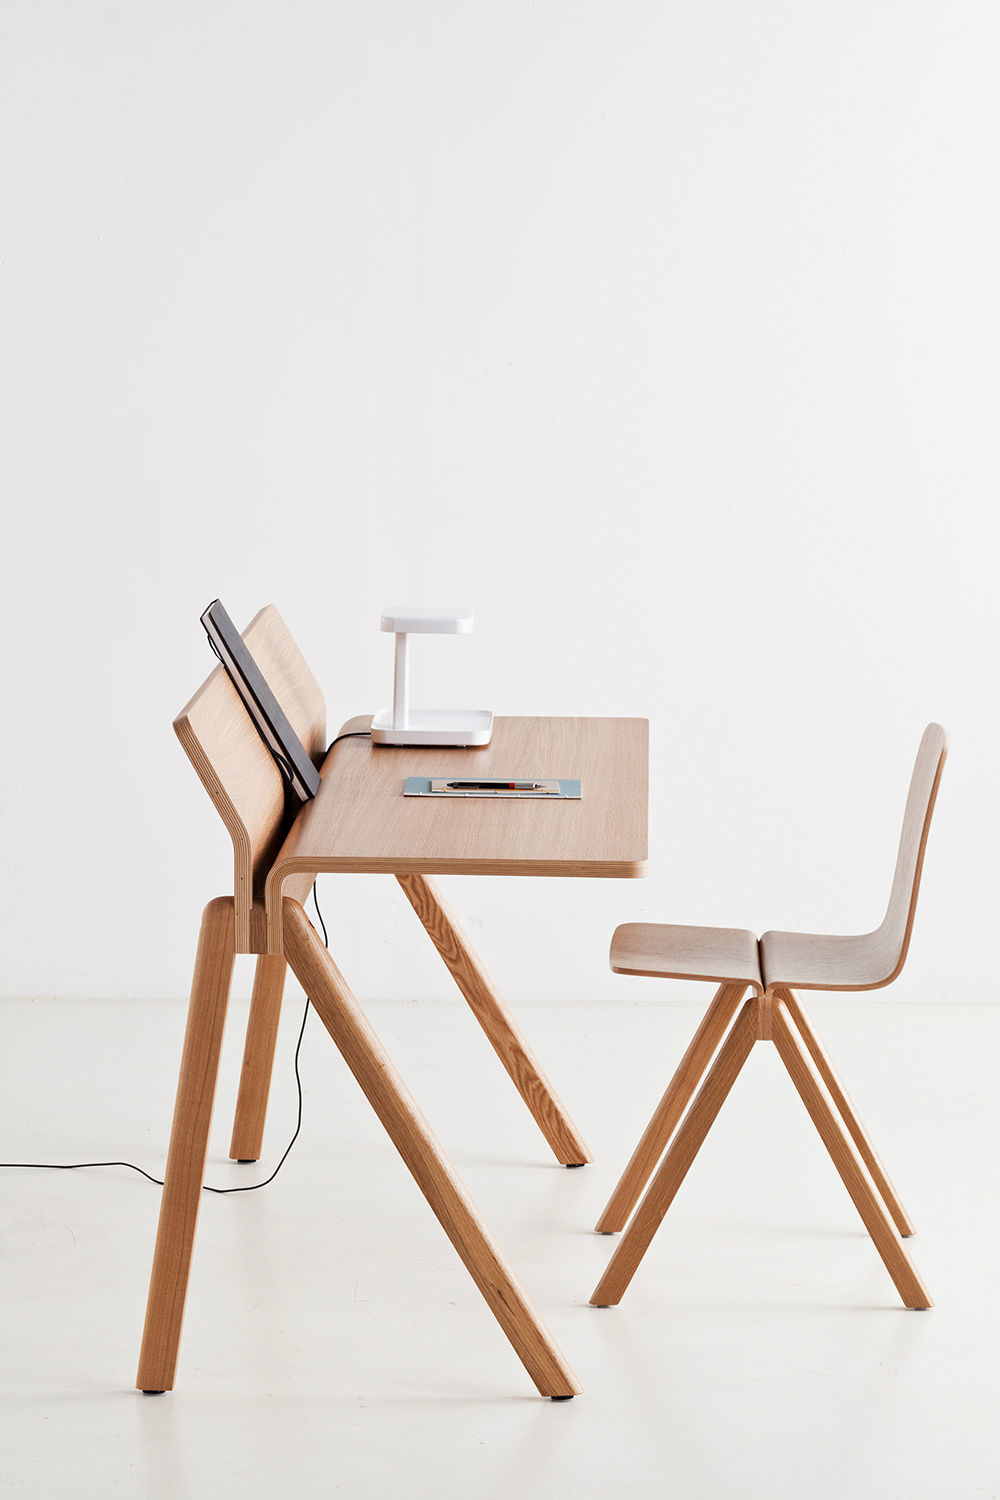 oak desk scandinavian design by ronan erwan bouroullec copenhague cph190 - Scan Design Desk